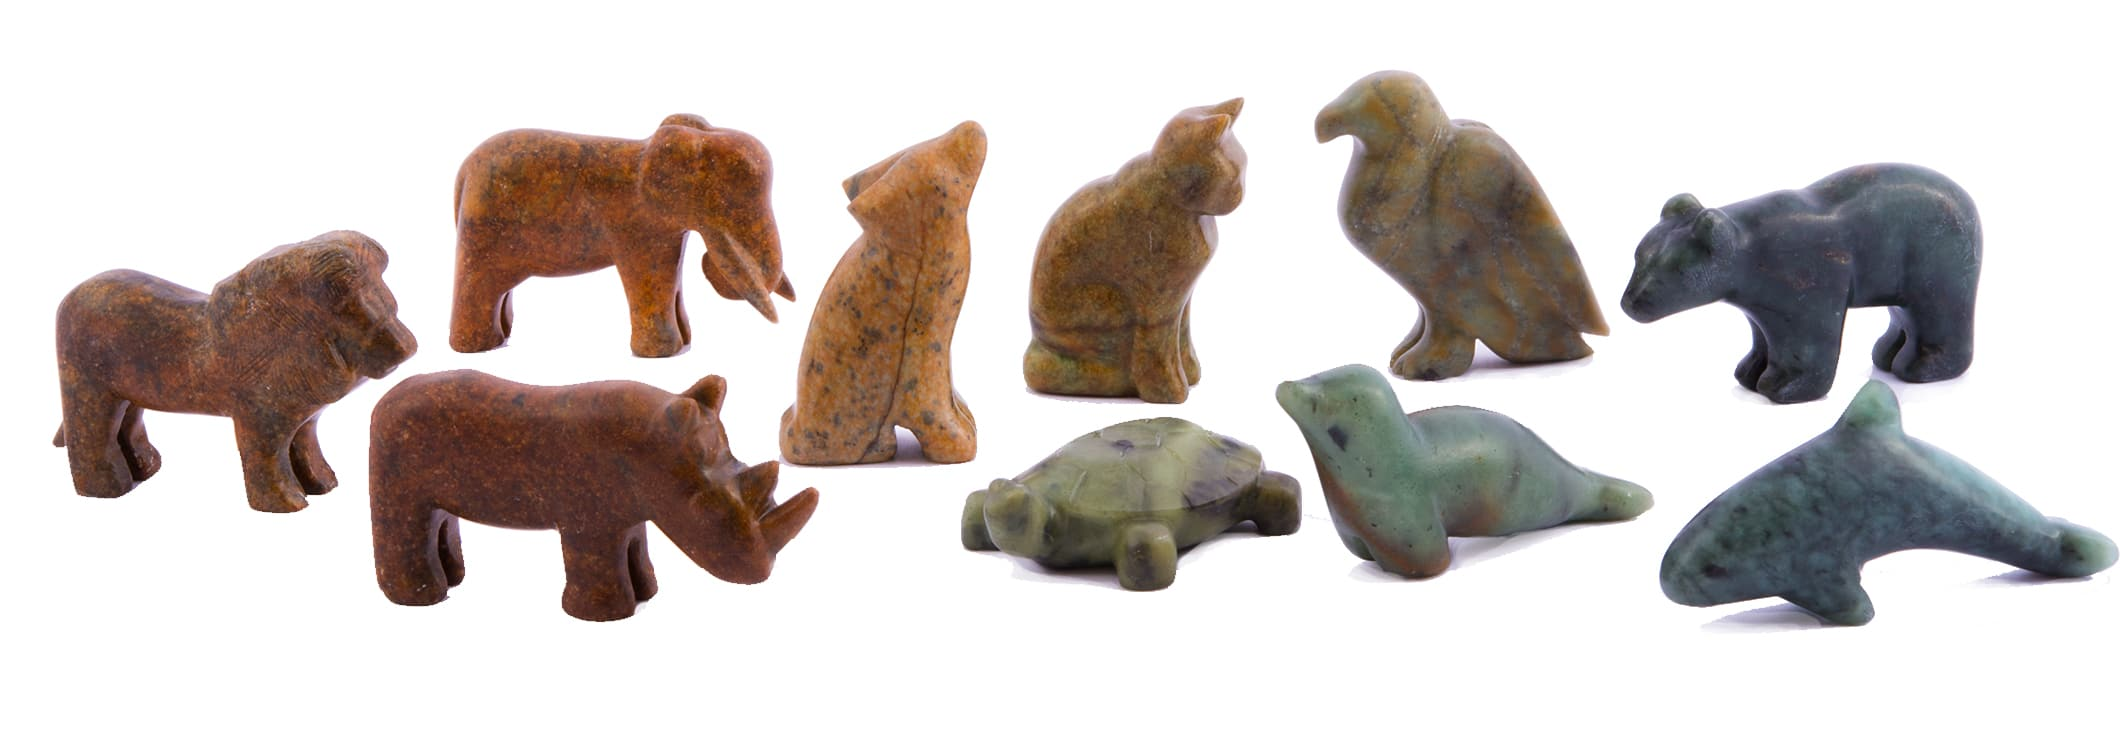 Ten animals carved in soapstone, one lion, rhino, elephant, wolf, cat, turtle, eagle, seal, bear and orca